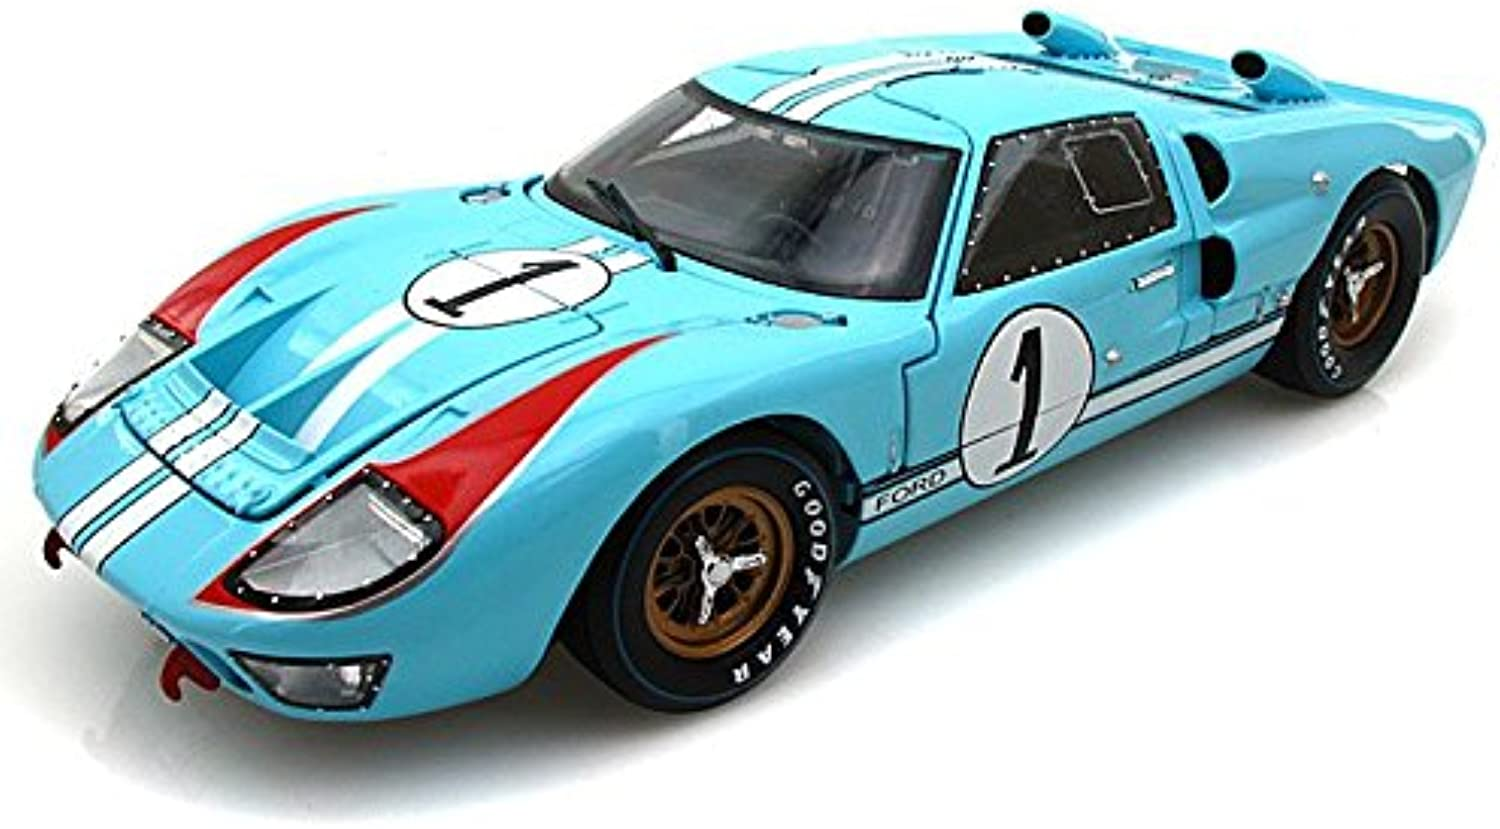 1966 Ford GT40 Mark II  1 Le Mans Miles Hulme 1 18 Gulf bluee (Clean version)